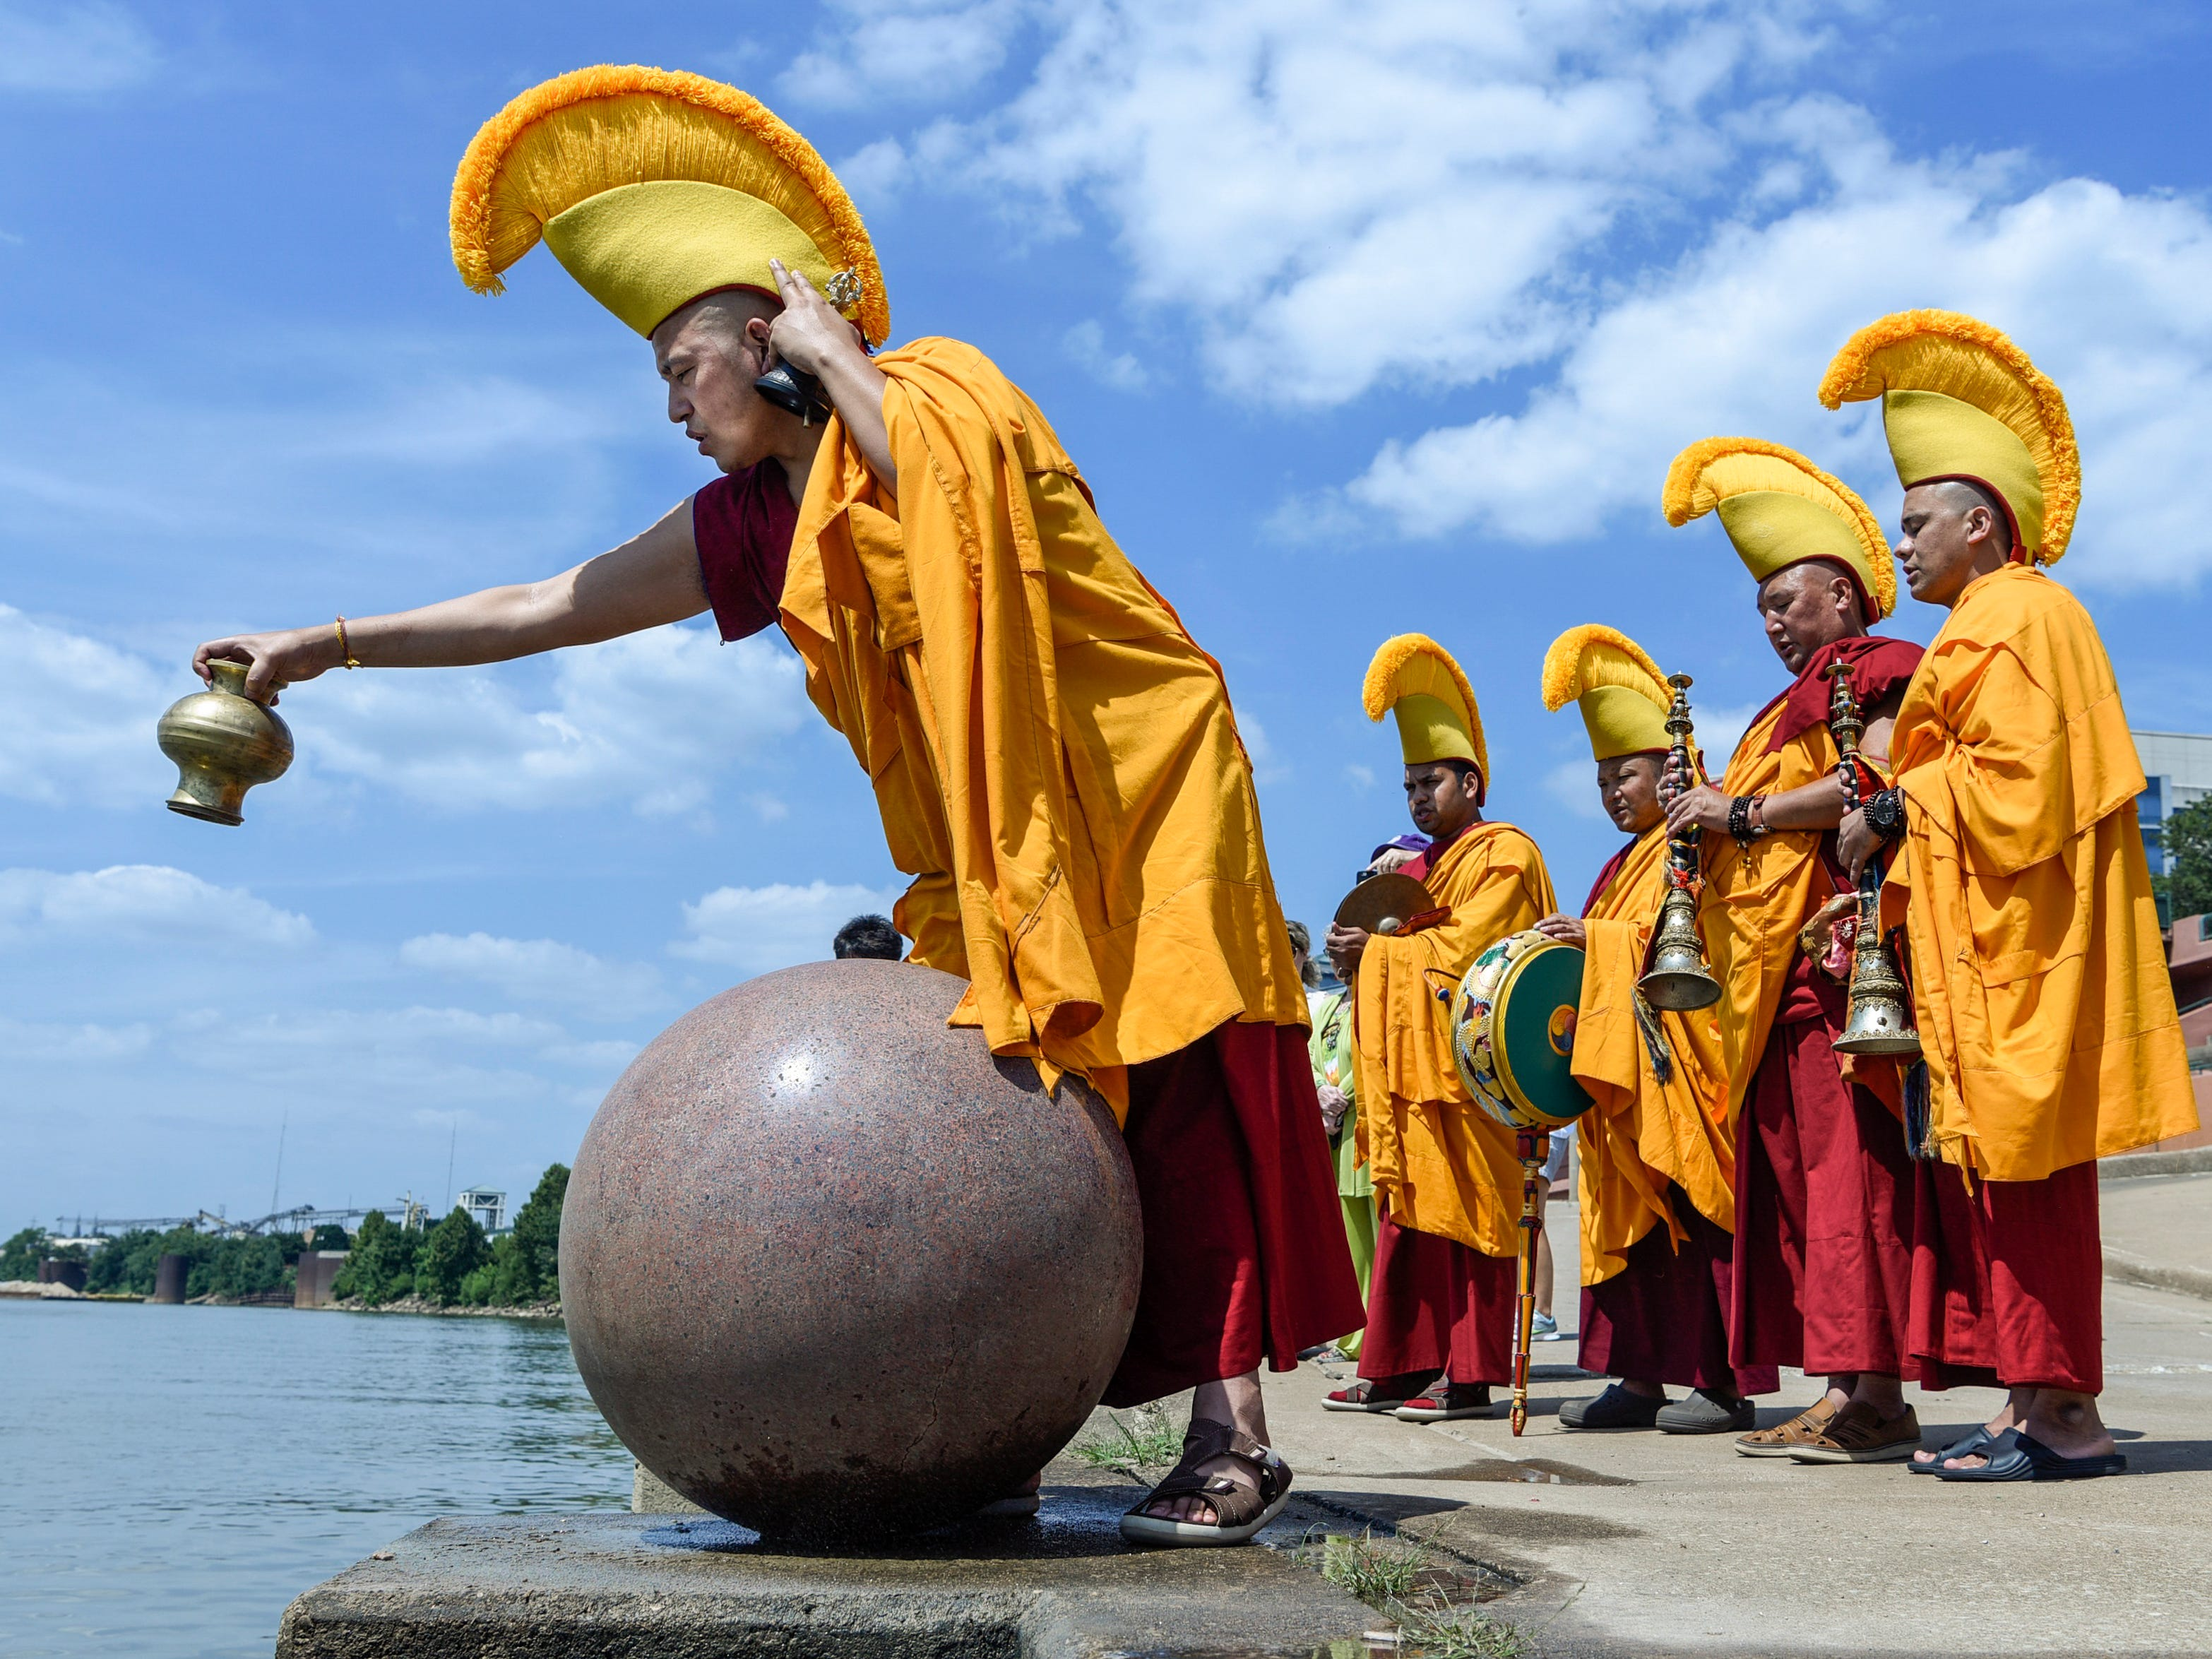 After five days of meticulous work creating a World Peace sand mandala, Tibetan monk Yeshi Rabgyal, left, disperses the colorful sand that was ceremoniously deconstructed into the Ohio River at Dress Plaza in Downtown Evansville, Thursday afternoon. The six monks visiting from Tashi Kyil Monastery in Dehra Dun, India, poured the sand into the river to spread prayers for peace and long life to Evansville residents and the world.